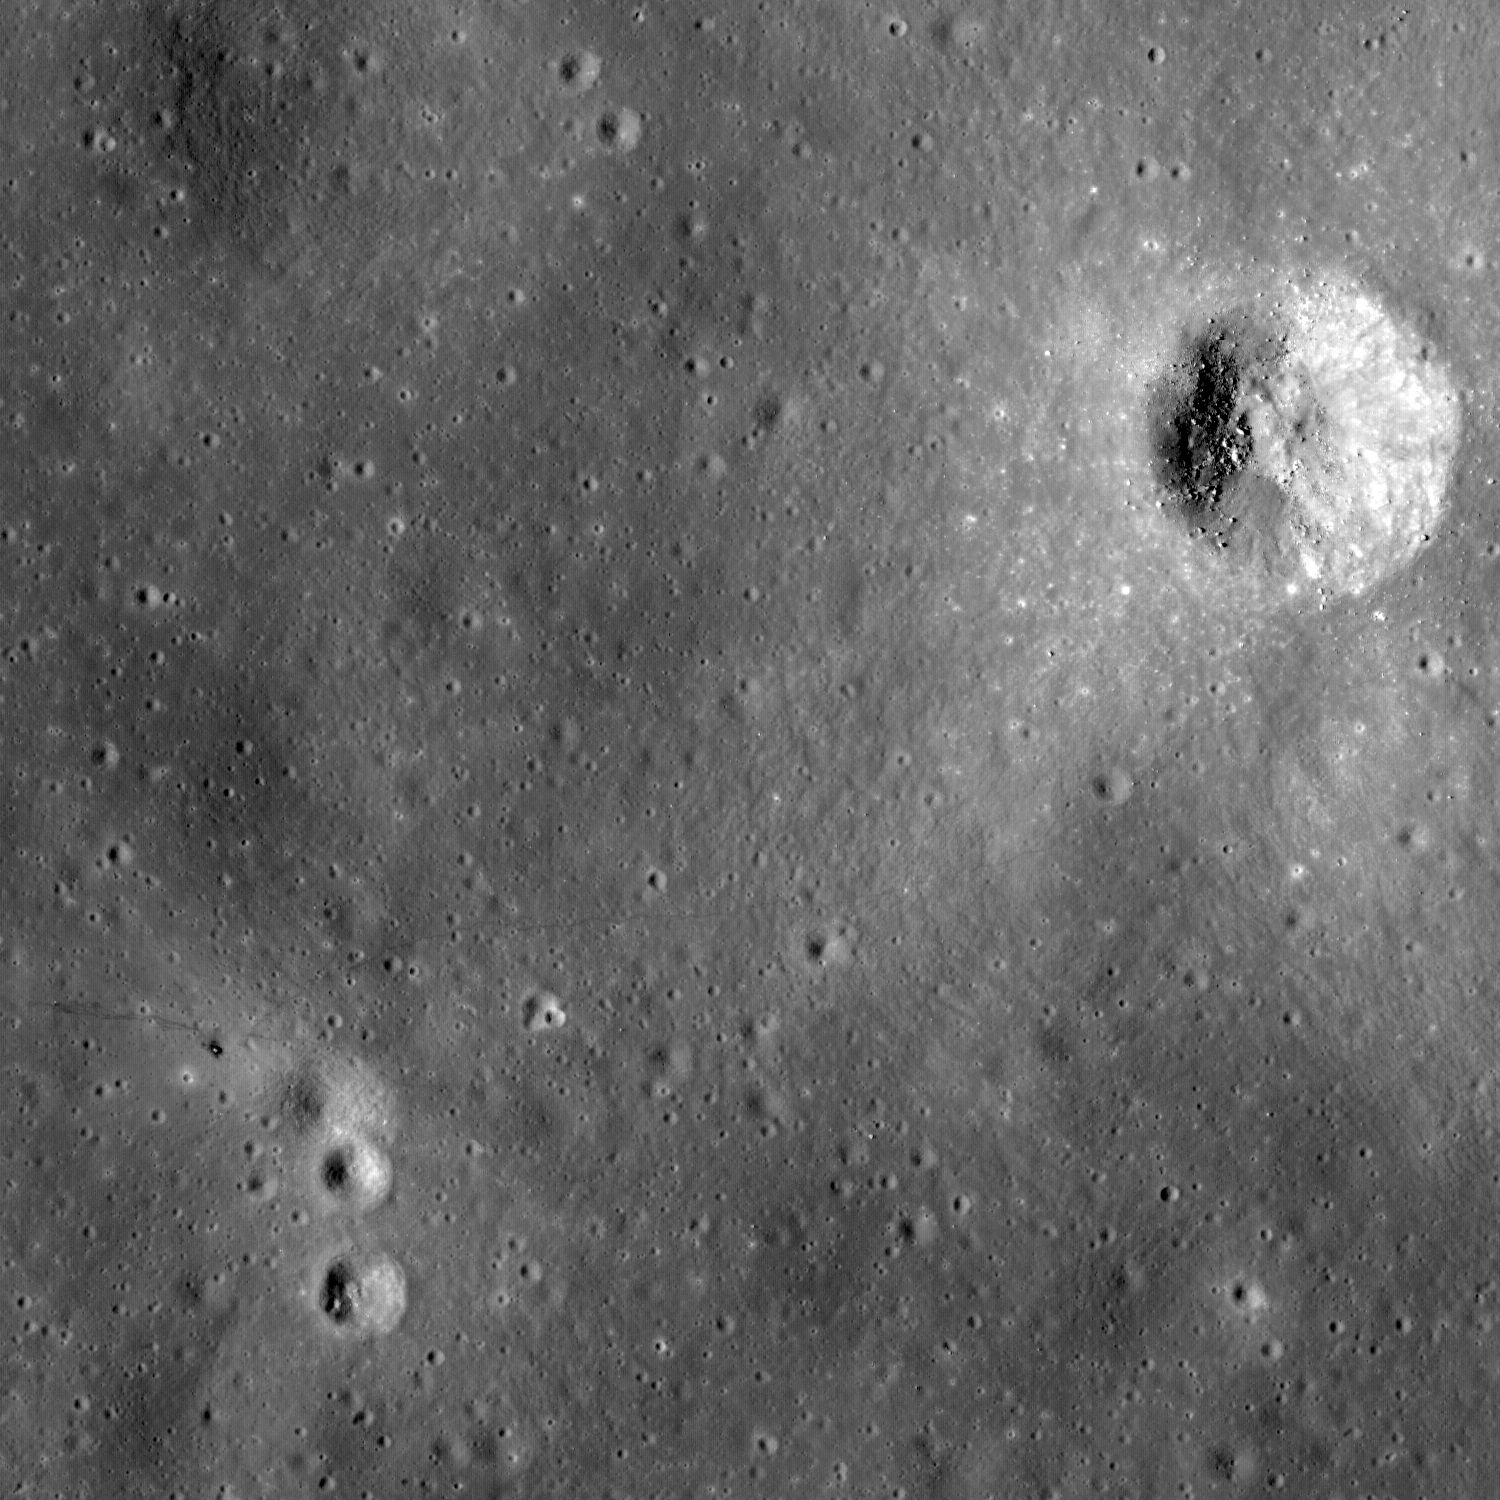 The LRO device photographed an unusual lunar formation 54